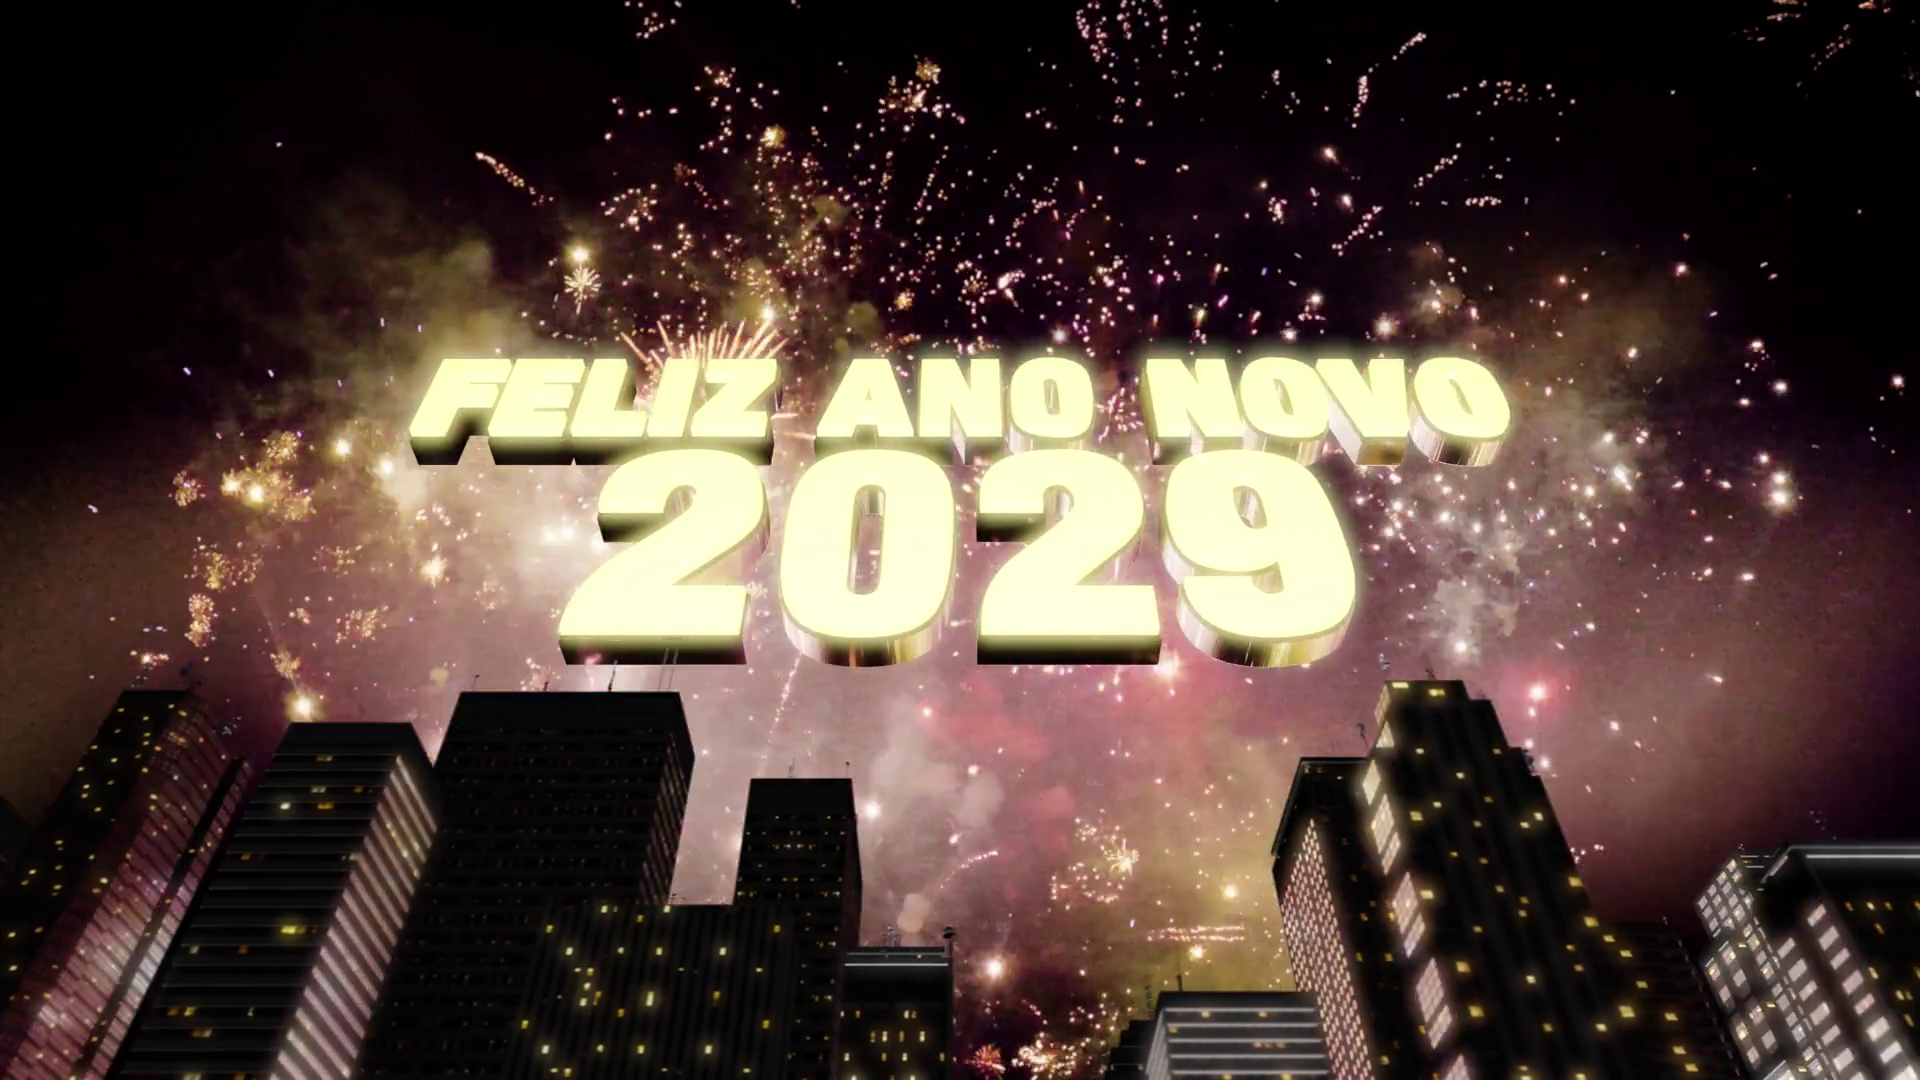 Seamless Looping 3d Animated Skyline With Fireworks - Happy New Year Russian 2019 , HD Wallpaper & Backgrounds